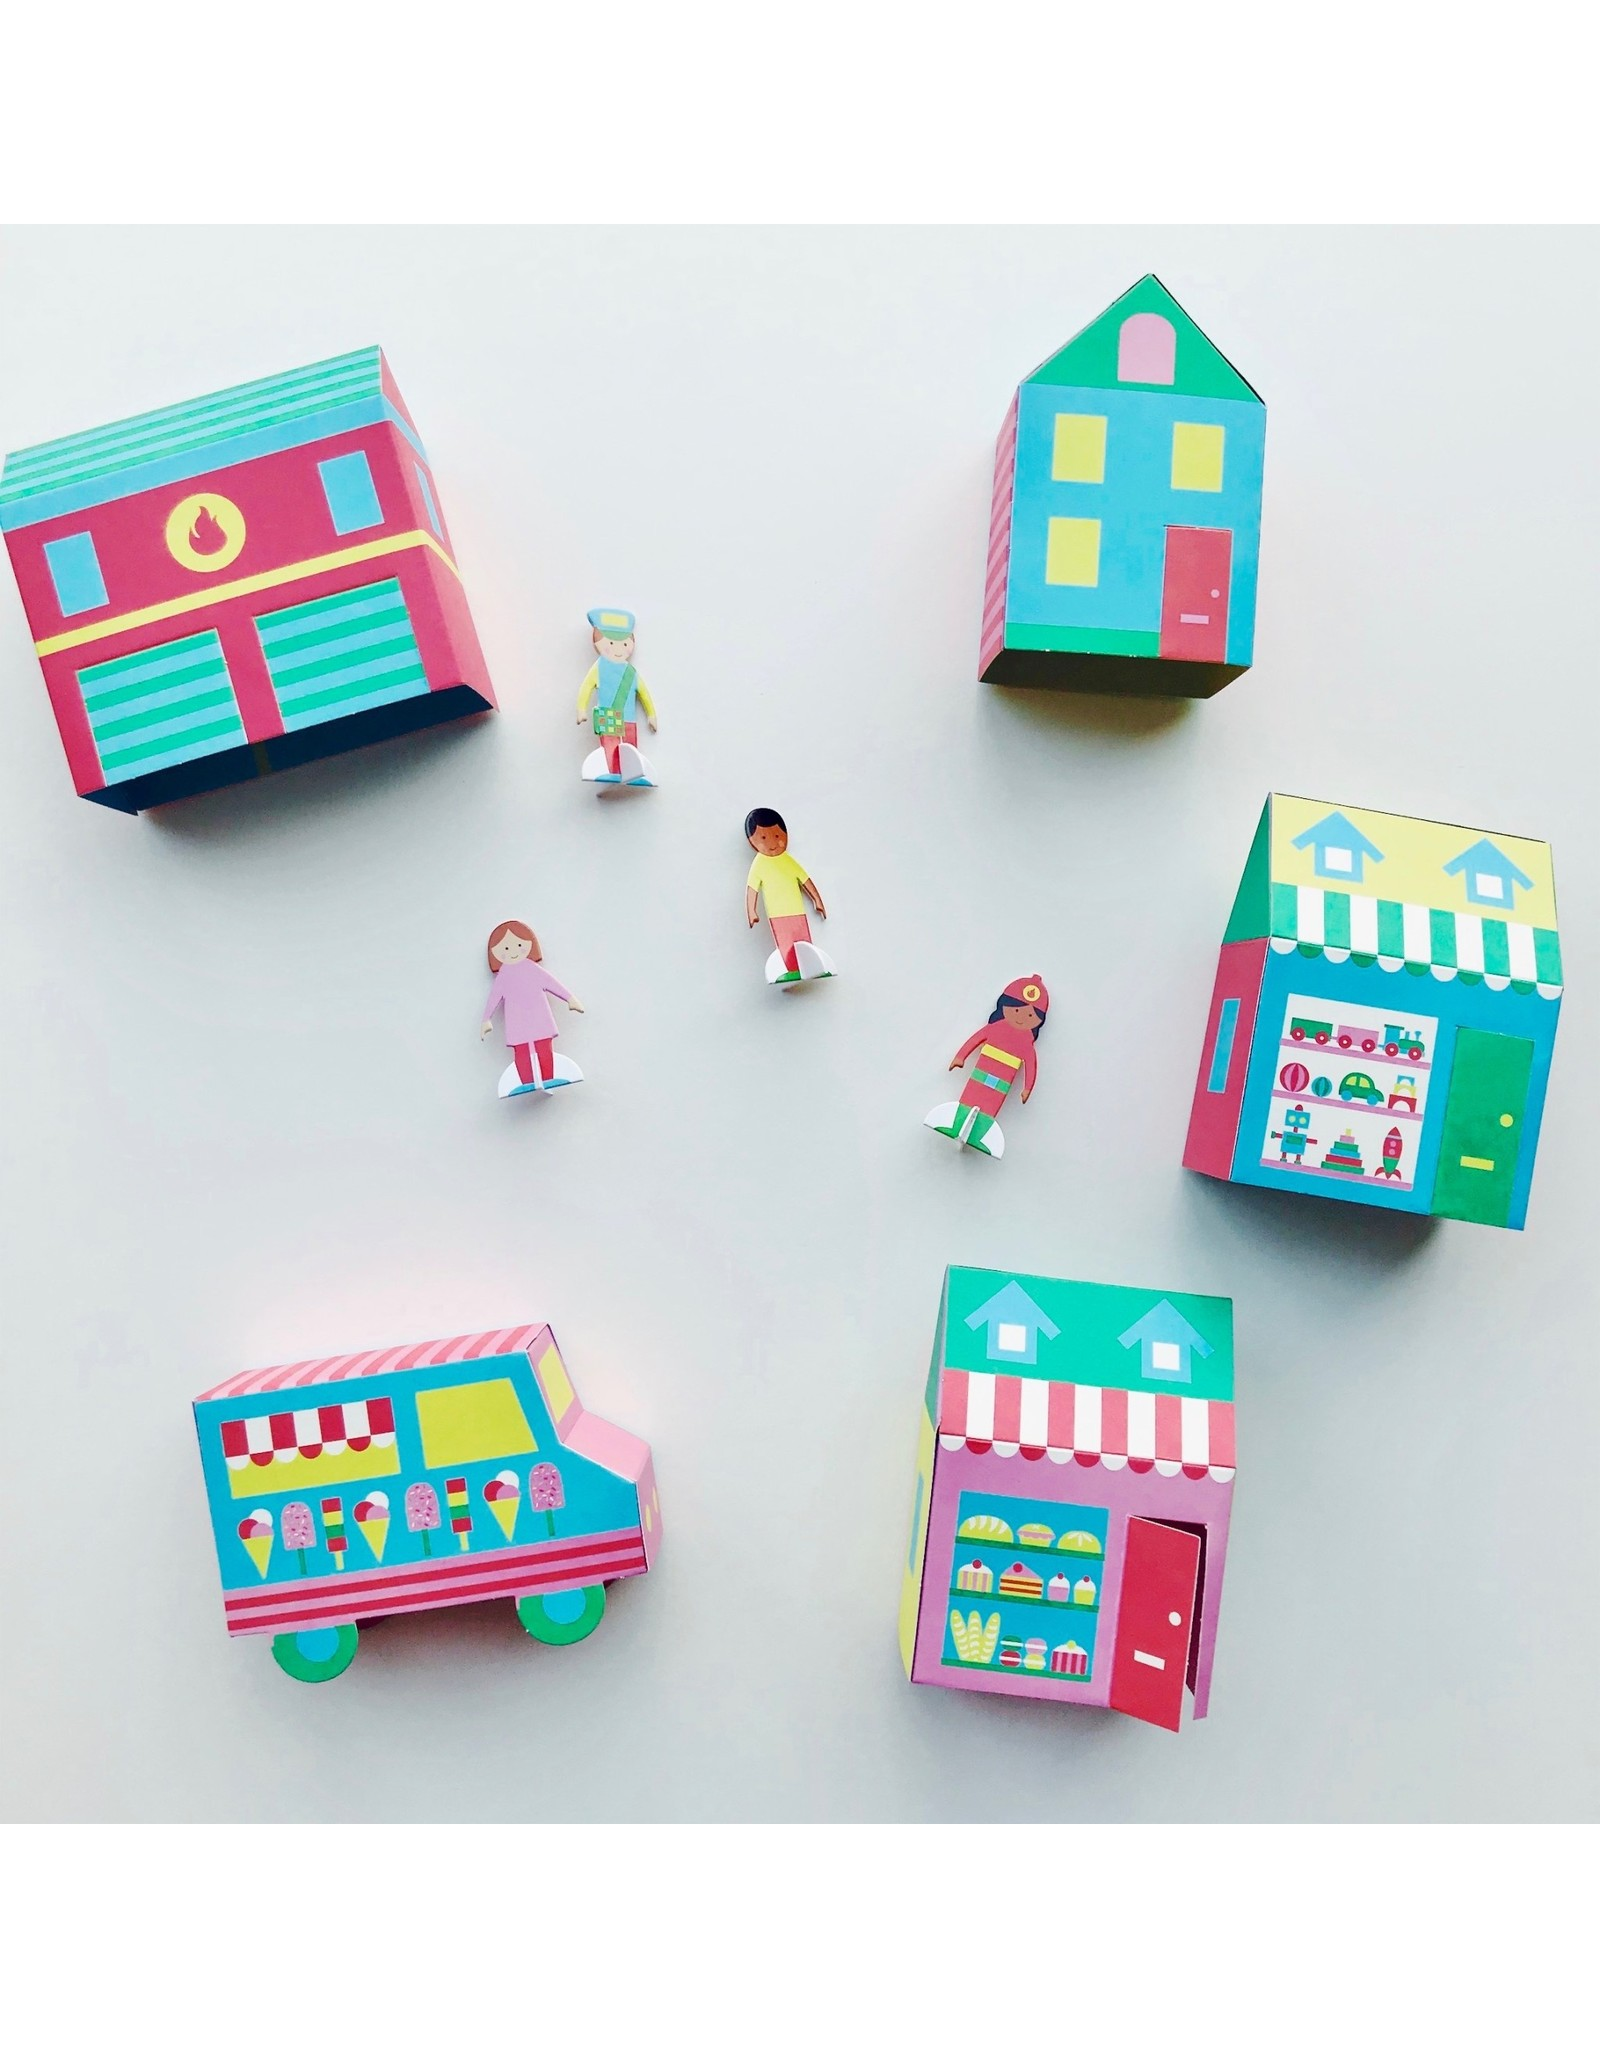 Make Your Own Town Craft Kit